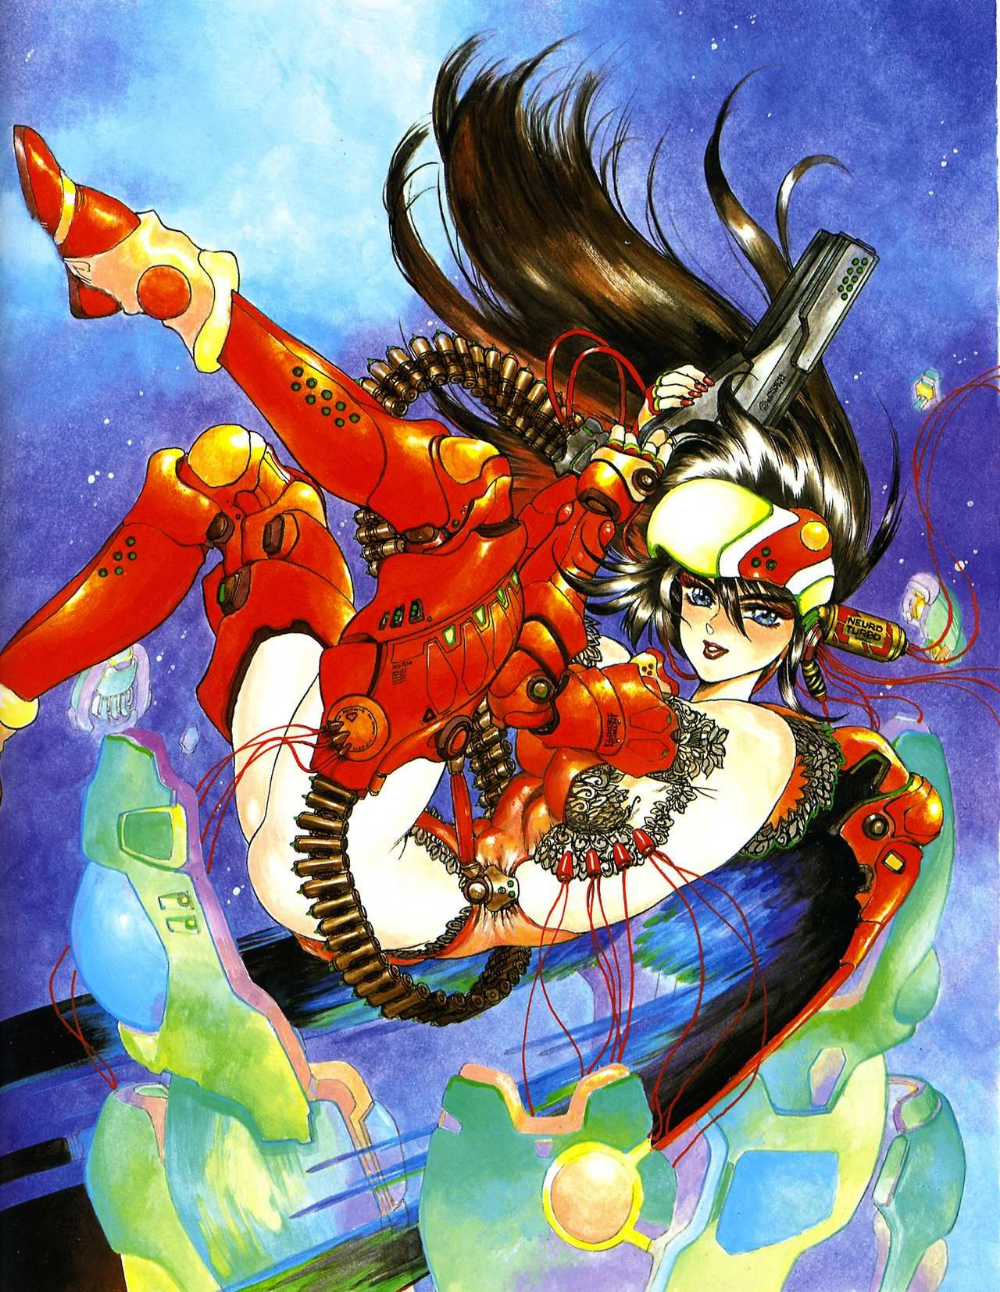 Masamune Shirow Anime in 2019 Masamune shirow, Art